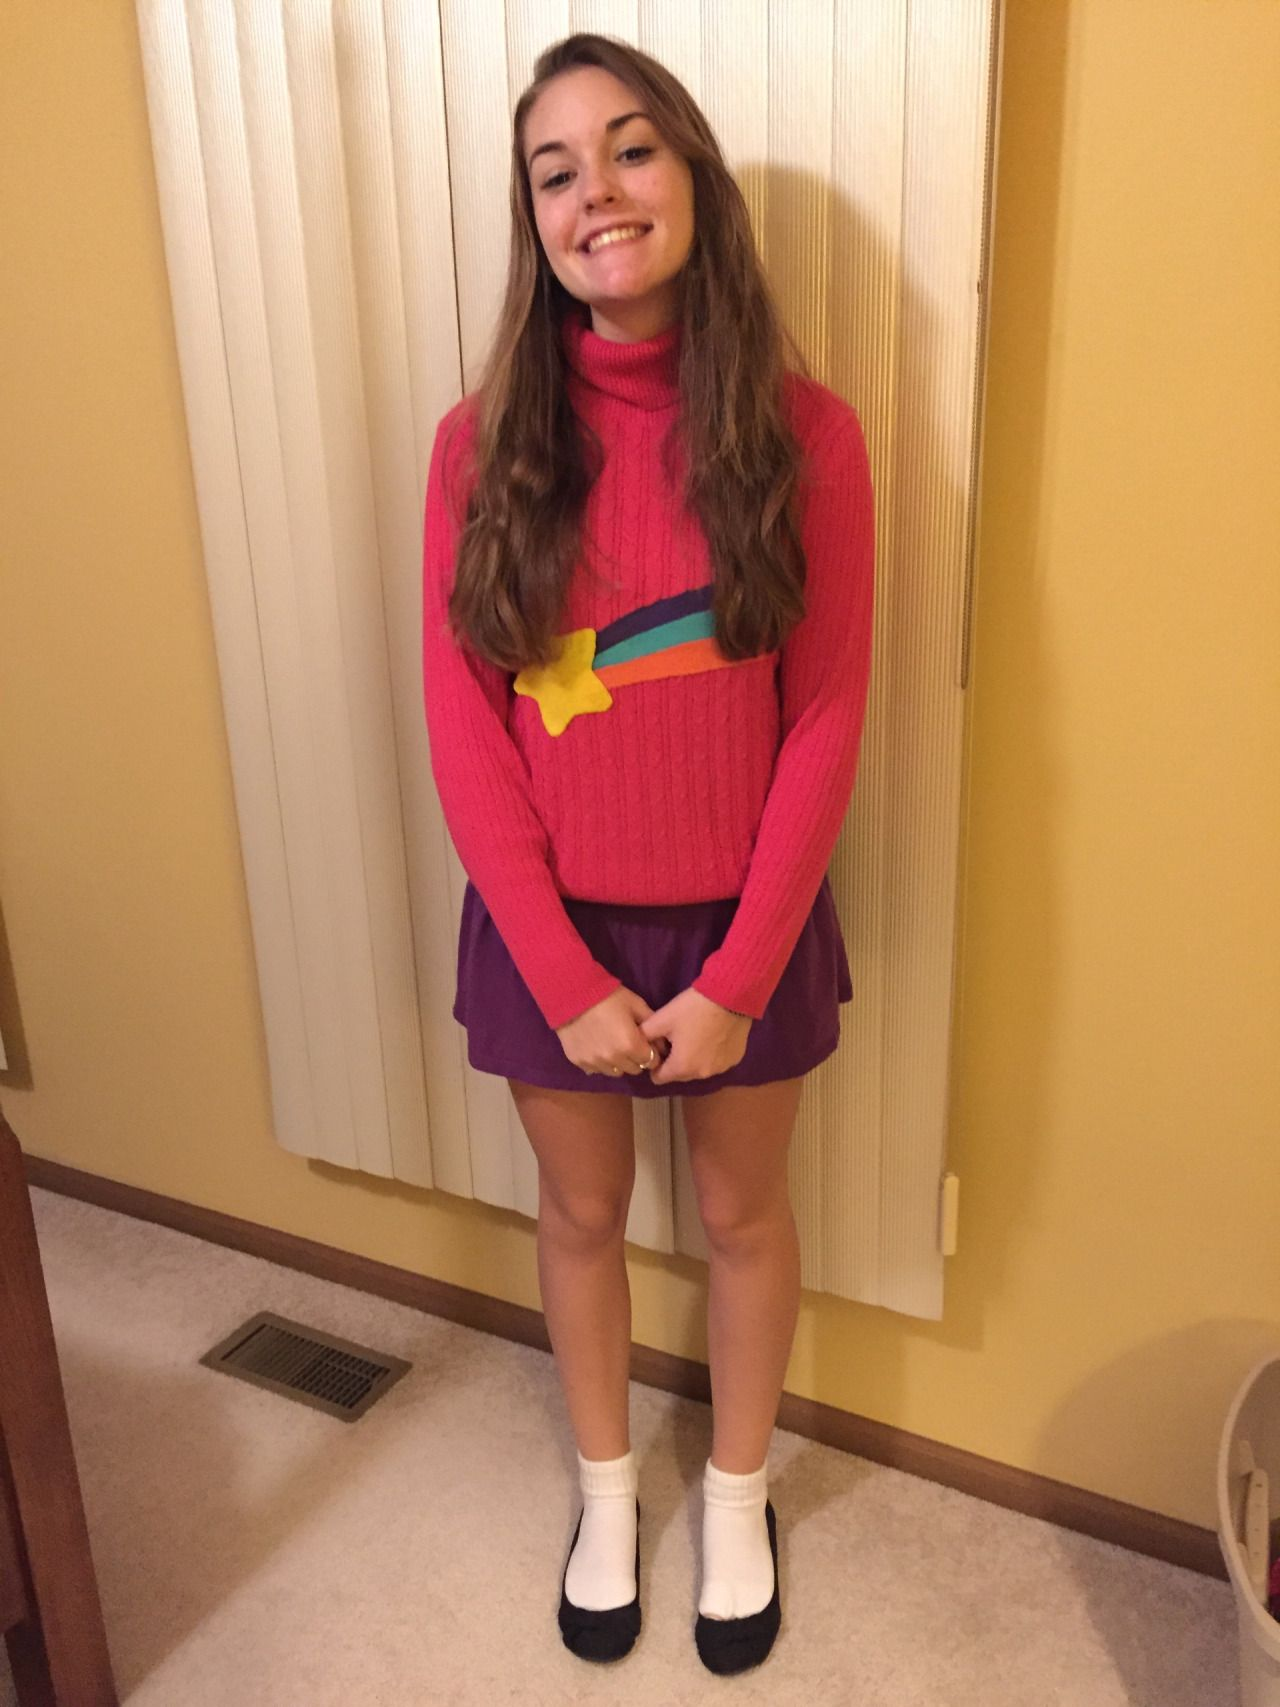 mabel pines light up sweater cosplay from gravity falls | cosplay ... - Weie Mbel Weie Wand